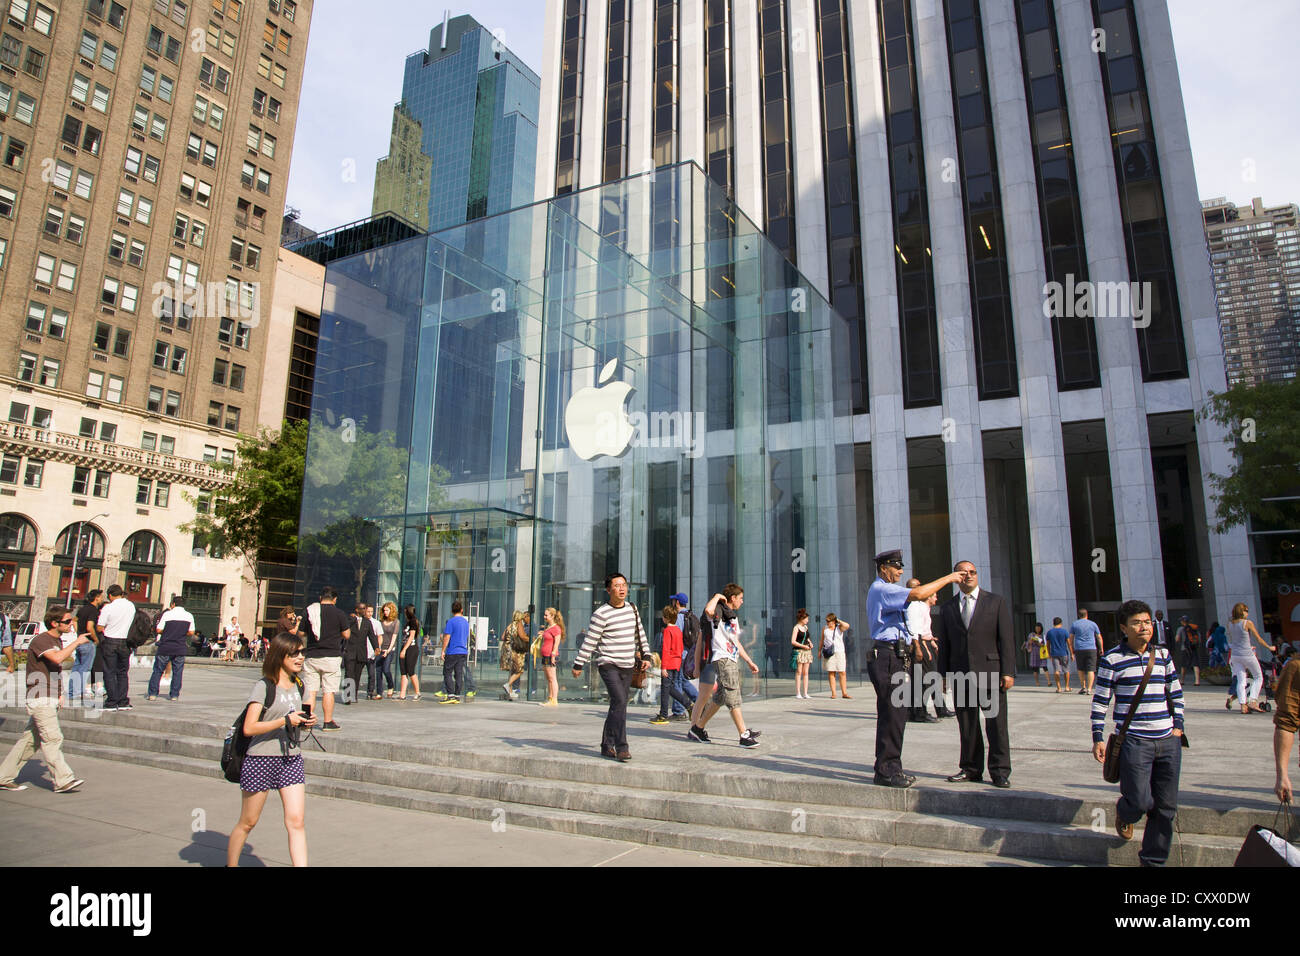 The Famous Glass Cube Entrance To Apple Store On 5th Avenue At 59th Street In Manhattan NYCGM Building Background